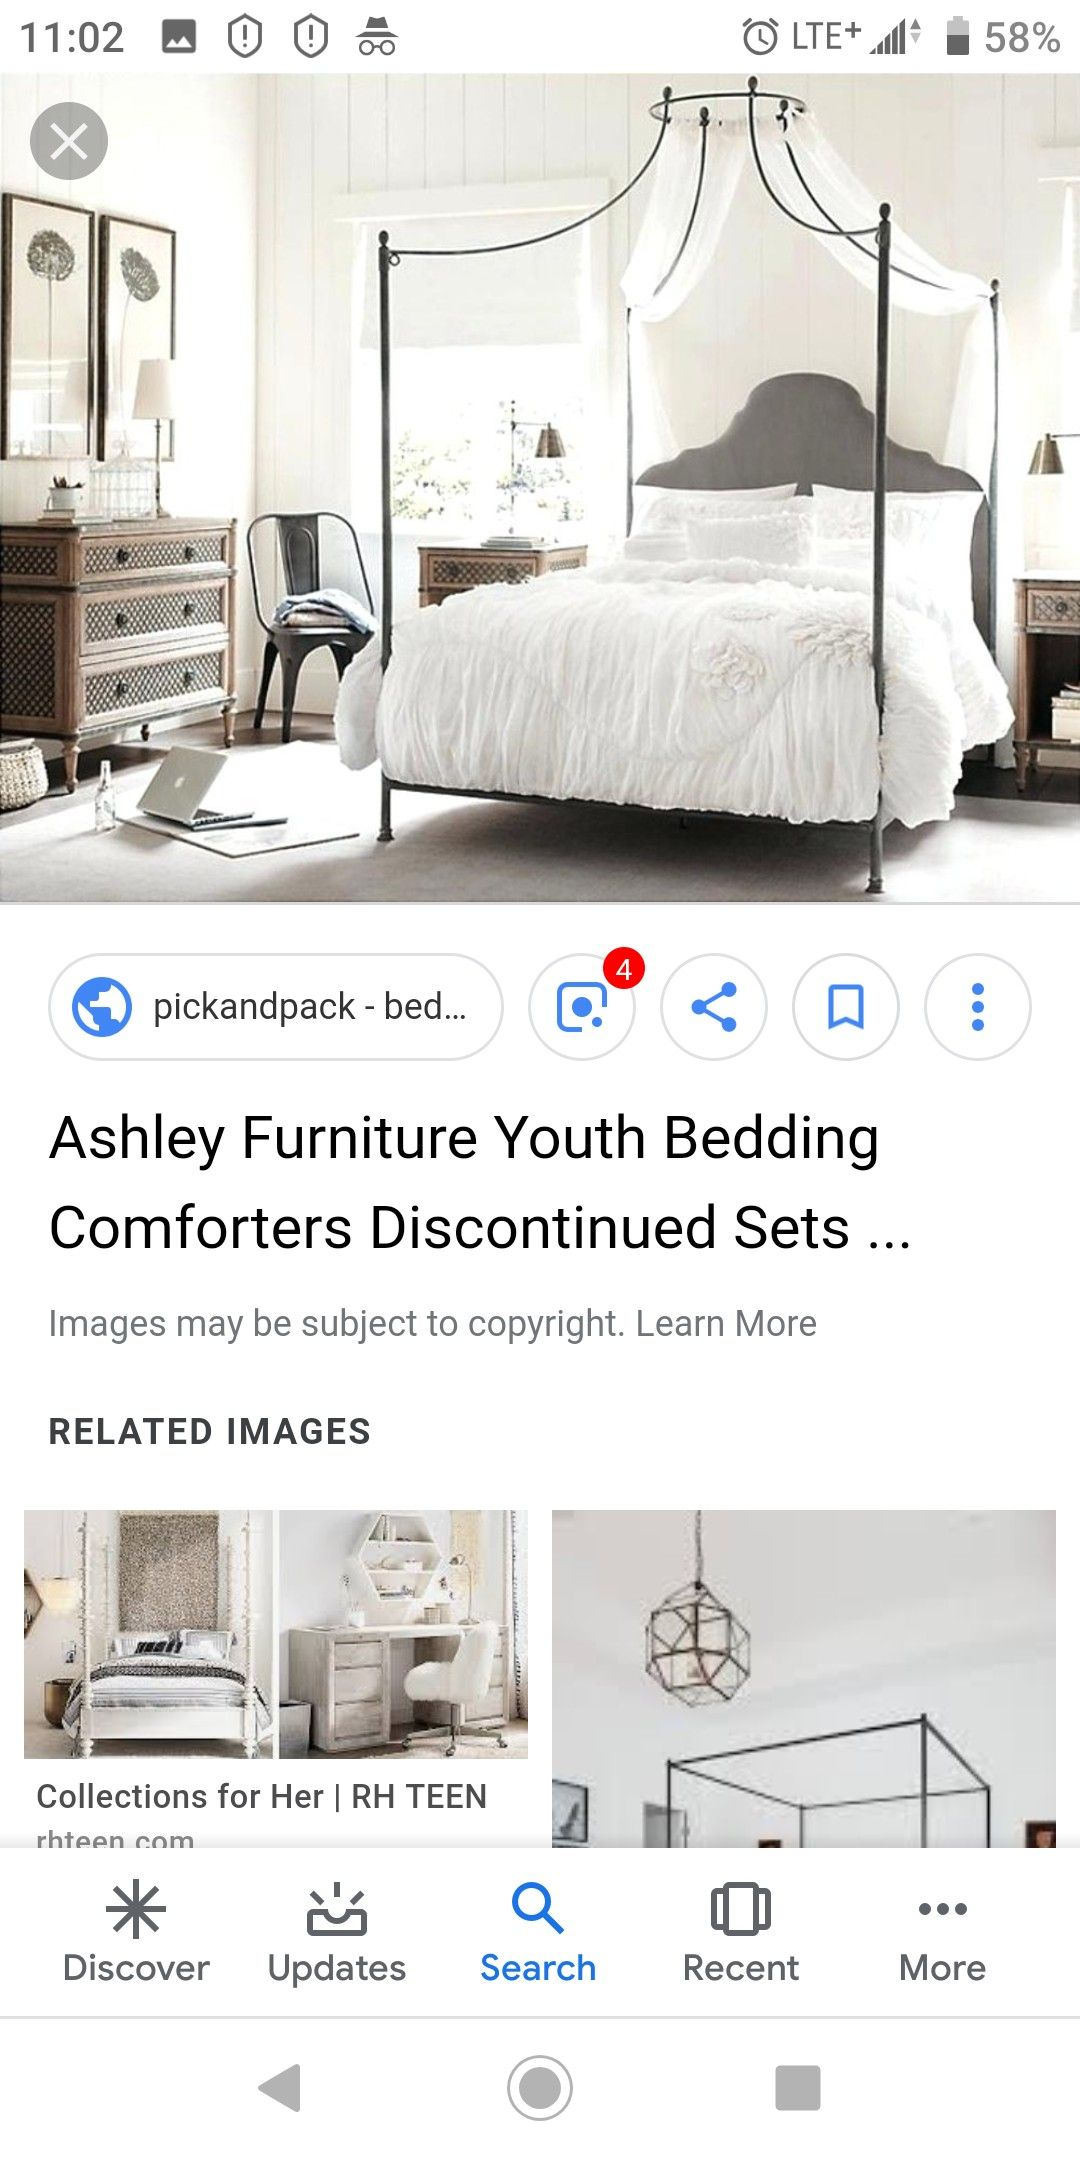 Ashley Furniture Bedroom Sets Discontinued : ashley, furniture, bedroom, discontinued, Girls, Remodel, Ideas, Ashley, Furniture,, Comforters,